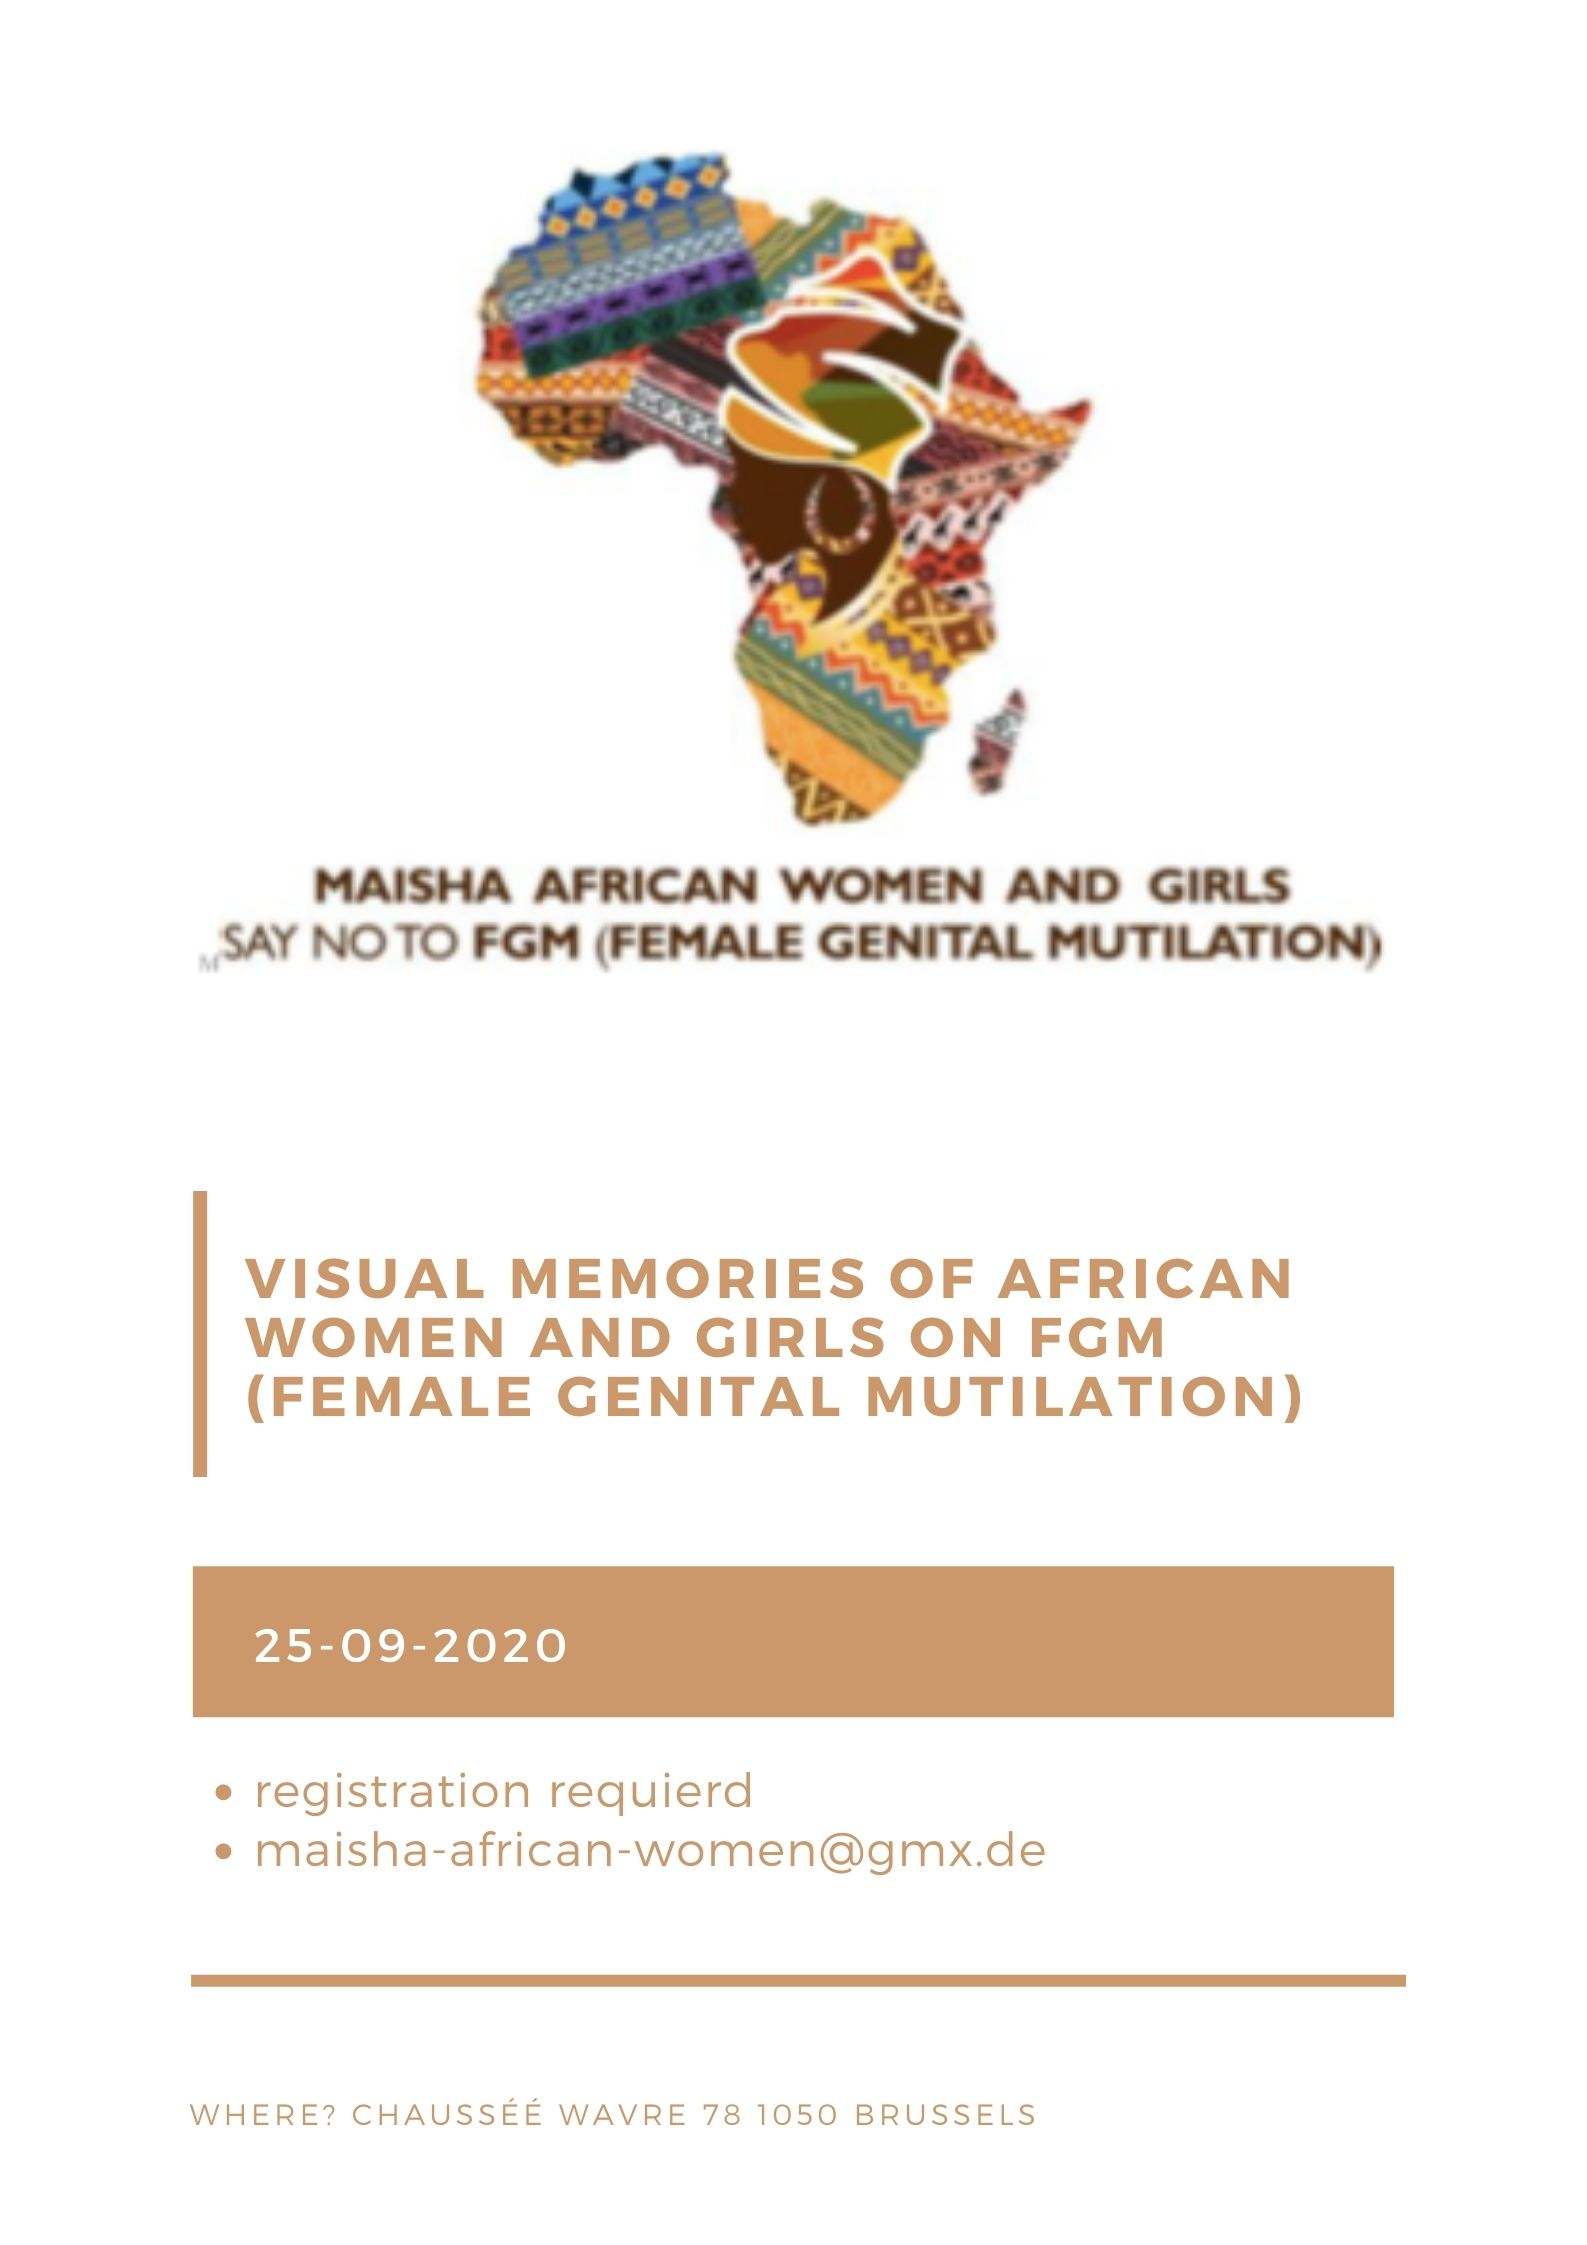 EXHIBITION INVITATION ON VISUAL MEMORIES OF AFRICAN WOMEN AND GIRLS ON FGM (FEMALE GENITAL MUTILATION)